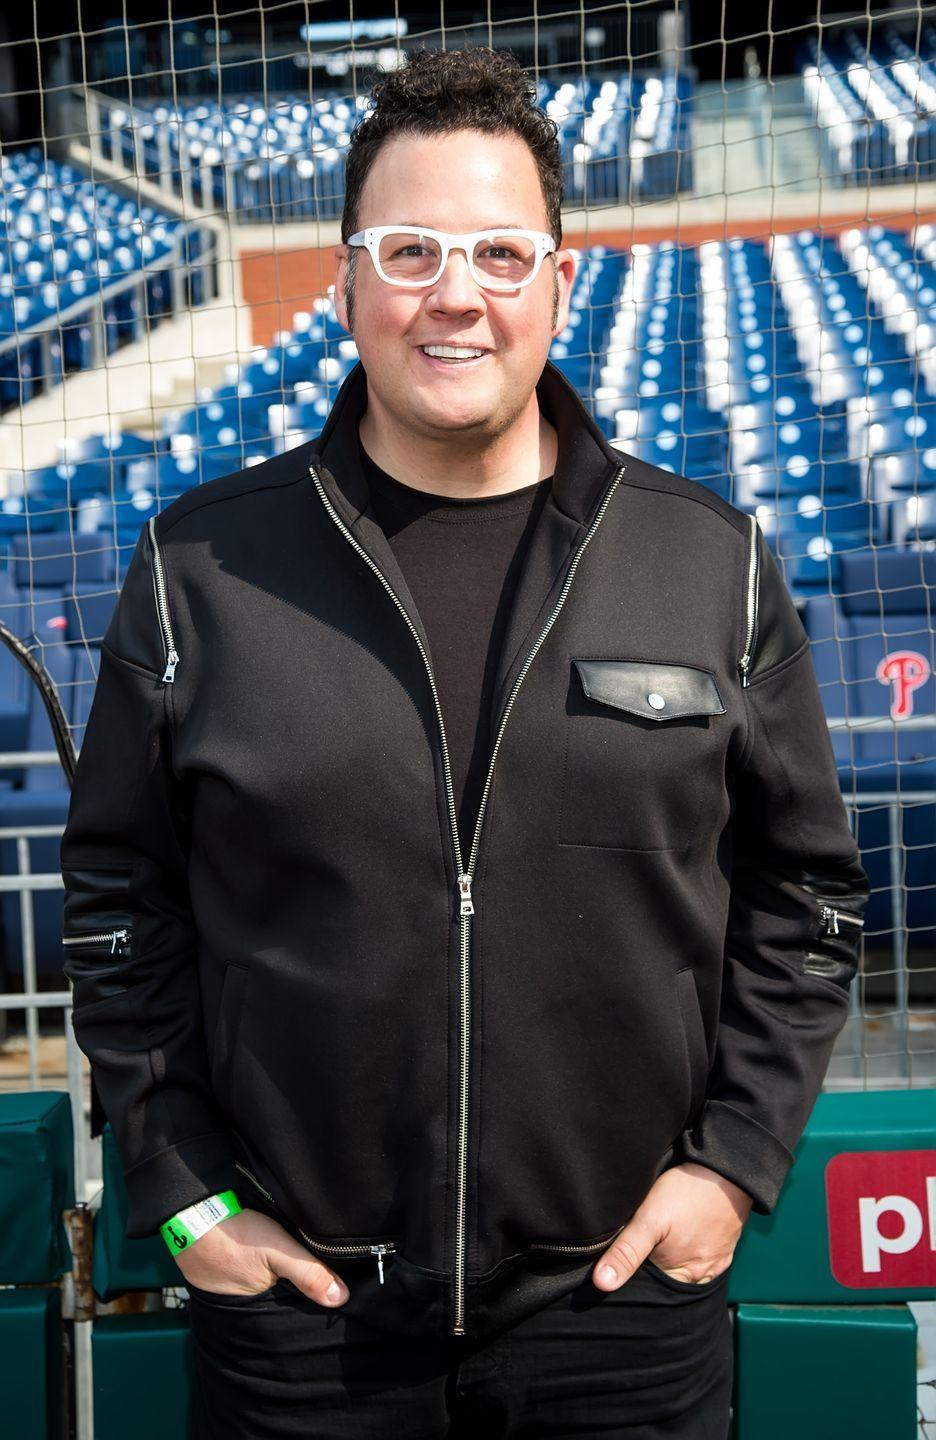 """<p>Graham chose a sleeve gastrectomy, which reduces the size of the stomach, so he could still continue to do his job and not reduce his diet. """"Because of my line of work, the doctor specifically thinks this is the surgery best suited for me,"""" he told <em><a href=""""https://people.com/celebrity/graham-elliot-undergoes-weight-loss-surgery/"""" rel=""""nofollow noopener"""" target=""""_blank"""" data-ylk=""""slk:People"""" class=""""link rapid-noclick-resp"""">People</a></em>. """"With gastric bypass and other surgeries, there's some ingredients you can't eat because it will cause you to get sick. This procedure will allow me to still taste and try everything.""""</p>"""